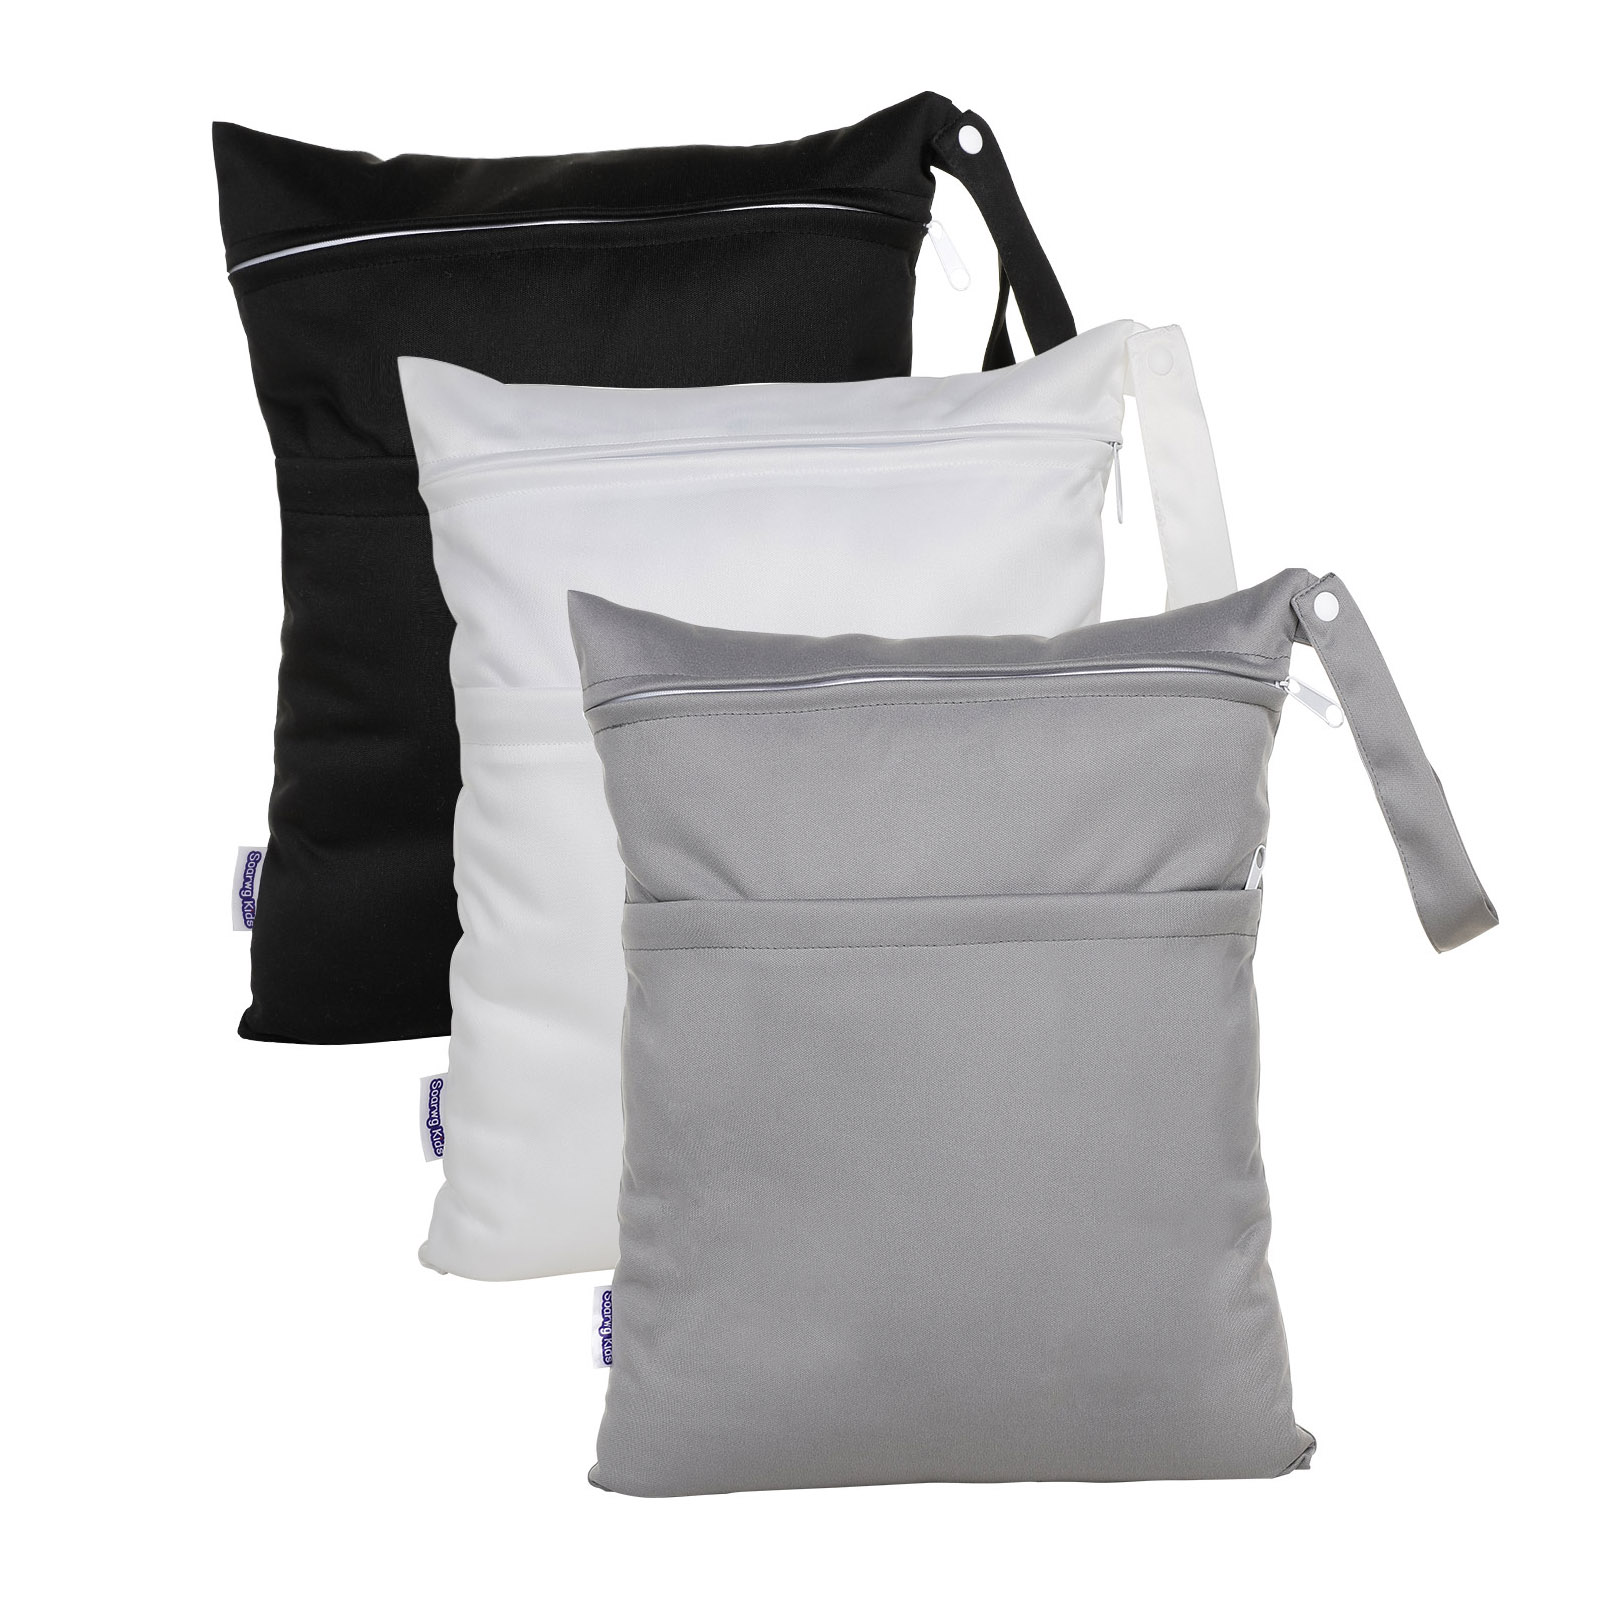 Wet Dry Bags for Baby Cloth Diapers  Washable Travel Bags Beach Pool Gym Bag for Swimsuits & Wet Clothes with 2 pack